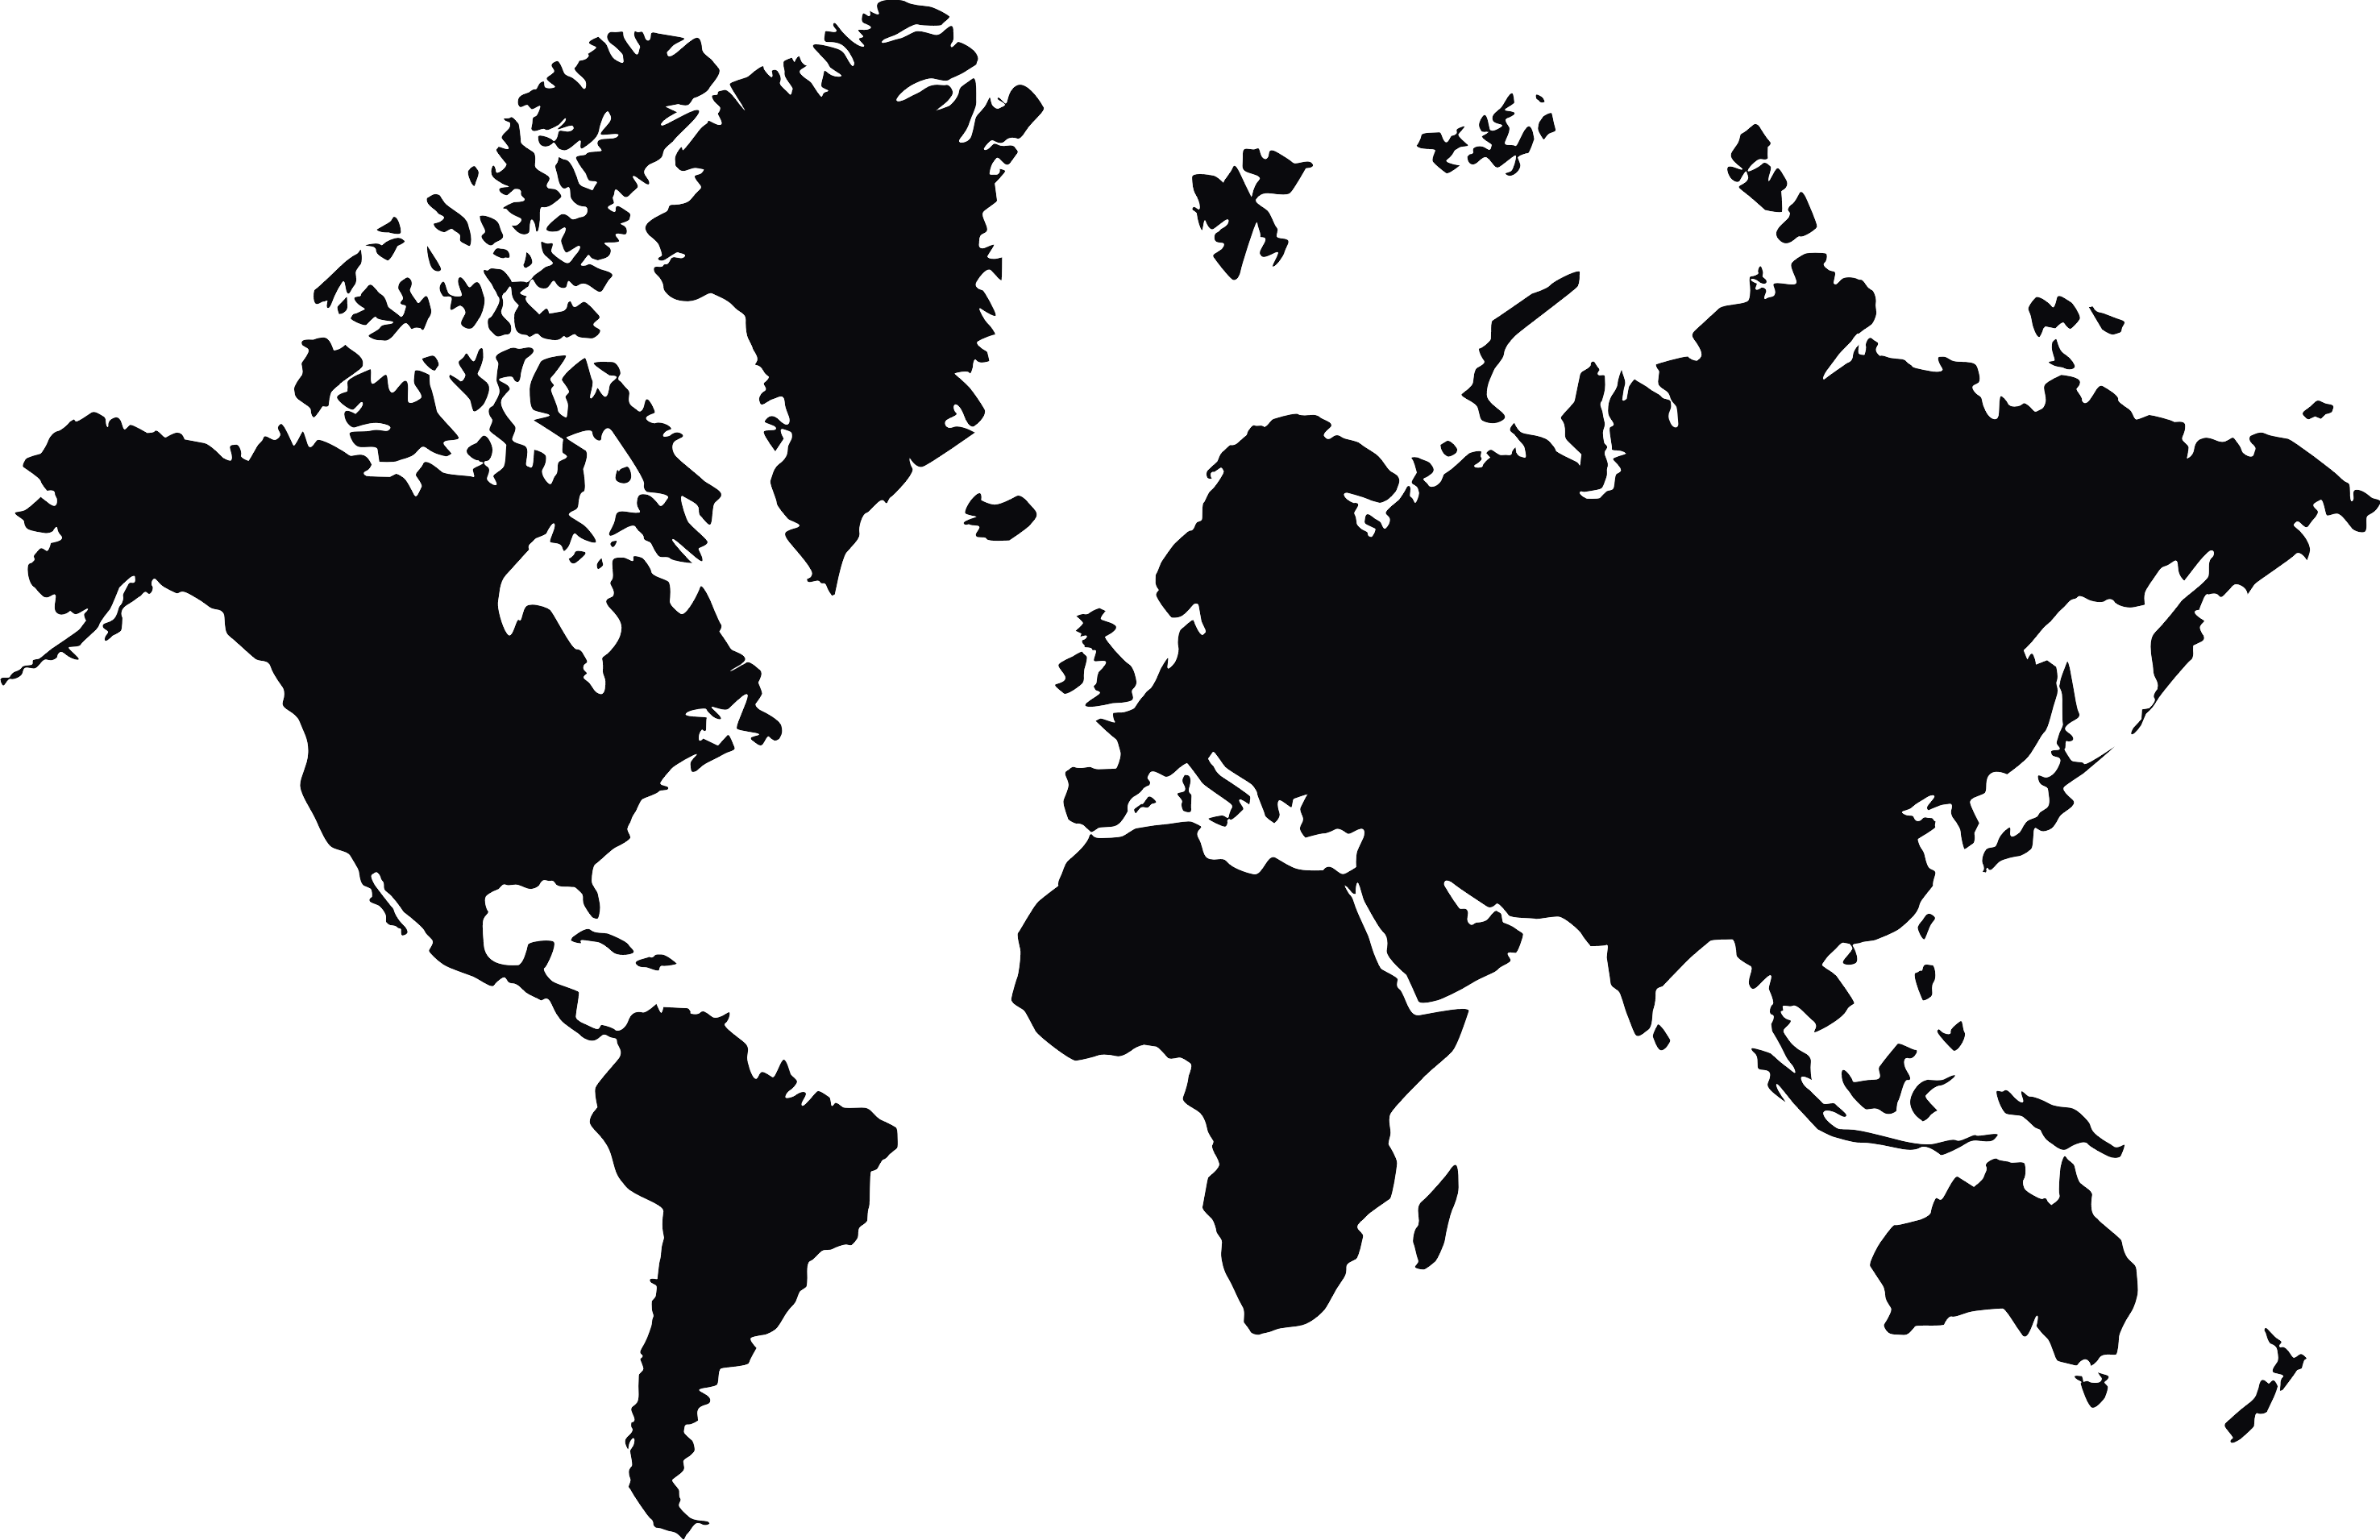 Transparent maps global. World map png